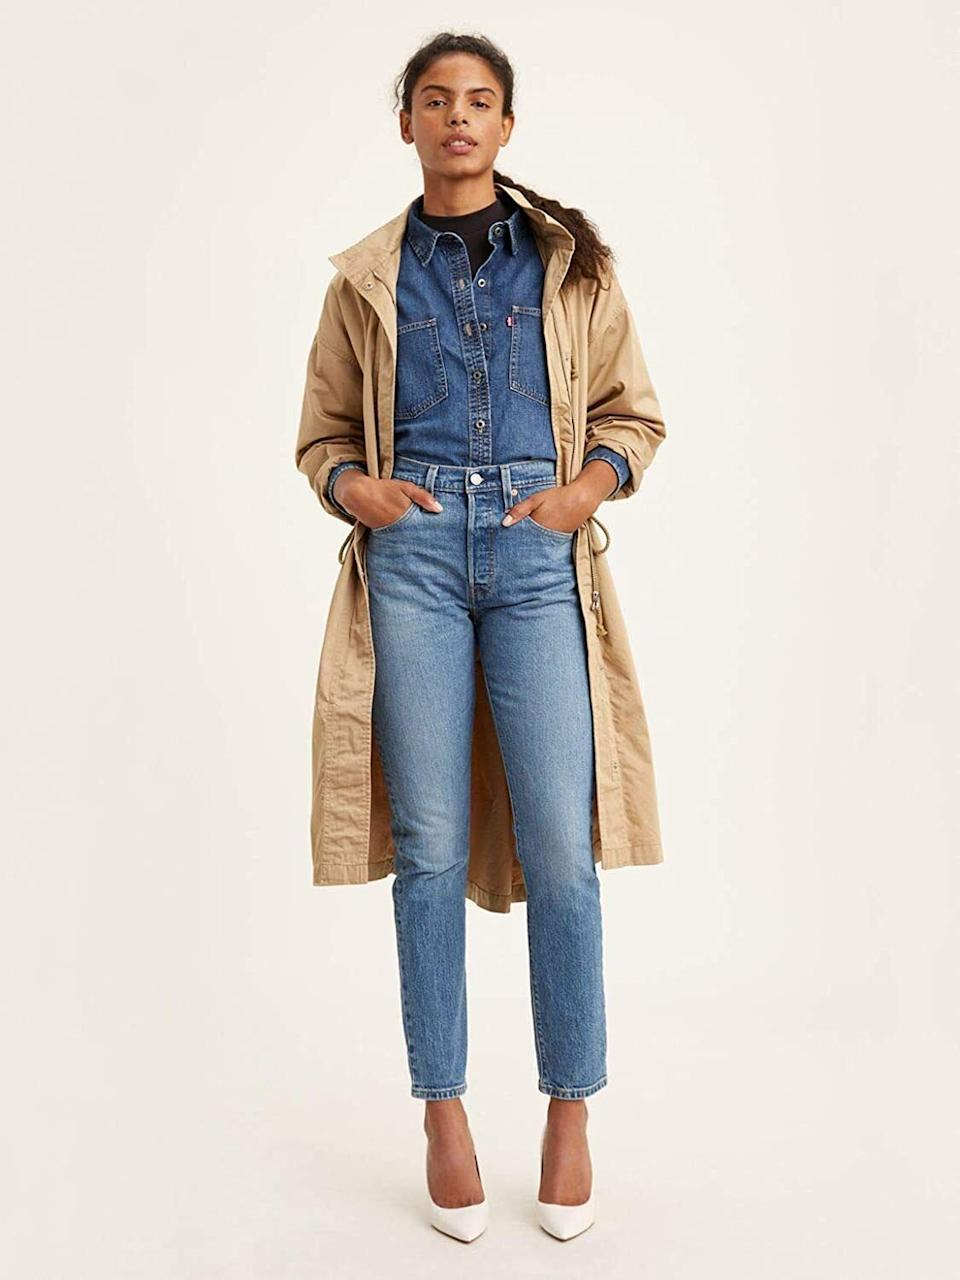 """These have that vintage cool-girl feel you've seen searching for.<br /><br /><strong></strong><strong>Promising review:</strong>""""Everything about these jeans are amazing! I usually wear a 26 and got a 27, and they fit perfectly. The wash and distressing gave the jeans a vintage feel. A little stiff at first, but after a couple of wears, they are my favorite and go-to jeans!"""" —<a href=""""https://amzn.to/2RCiRWl"""" target=""""_blank"""" rel=""""nofollow noopener noreferrer"""" data-skimlinks-tracking=""""5753950"""" data-vars-affiliate=""""Amazon"""" data-vars-href=""""https://www.amazon.com/gp/customer-reviews/R19LJZJ18EQRTI?tag=bfabby-20&ascsubtag=5753950%2C7%2C30%2Cmobile_web%2C0%2C0%2C0"""" data-vars-keywords=""""cleaning,fast fashion"""" data-vars-link-id=""""0"""" data-vars-price="""""""" data-vars-retailers=""""Levi,Amazon"""">Danecort</a><br /><br /><strong>Get them from Amazon for<a href=""""https://amzn.to/3ahyNDM"""" target=""""_blank"""" rel=""""nofollow noopener noreferrer"""" data-skimlinks-tracking=""""5753950"""" data-vars-affiliate=""""Amazon"""" data-vars-asin=""""B01M9I54UR"""" data-vars-href=""""https://www.amazon.com/dp/B01M9I54UR?tag=bfabby-20&ascsubtag=5753950%2C7%2C30%2Cmobile_web%2C0%2C0%2C15974045"""" data-vars-keywords=""""cleaning,fast fashion"""" data-vars-link-id=""""15974045"""" data-vars-price="""""""" data-vars-product-id=""""18090277"""" data-vars-product-img=""""https://m.media-amazon.com/images/I/31EKpvTS17L.jpg"""" data-vars-product-title=""""Levi's Mile High Super Skinny Women's Jeans"""" data-vars-retailers=""""Levi,Amazon"""">$98+</a>(available in sizes 23-34 and in six colors).</strong>"""